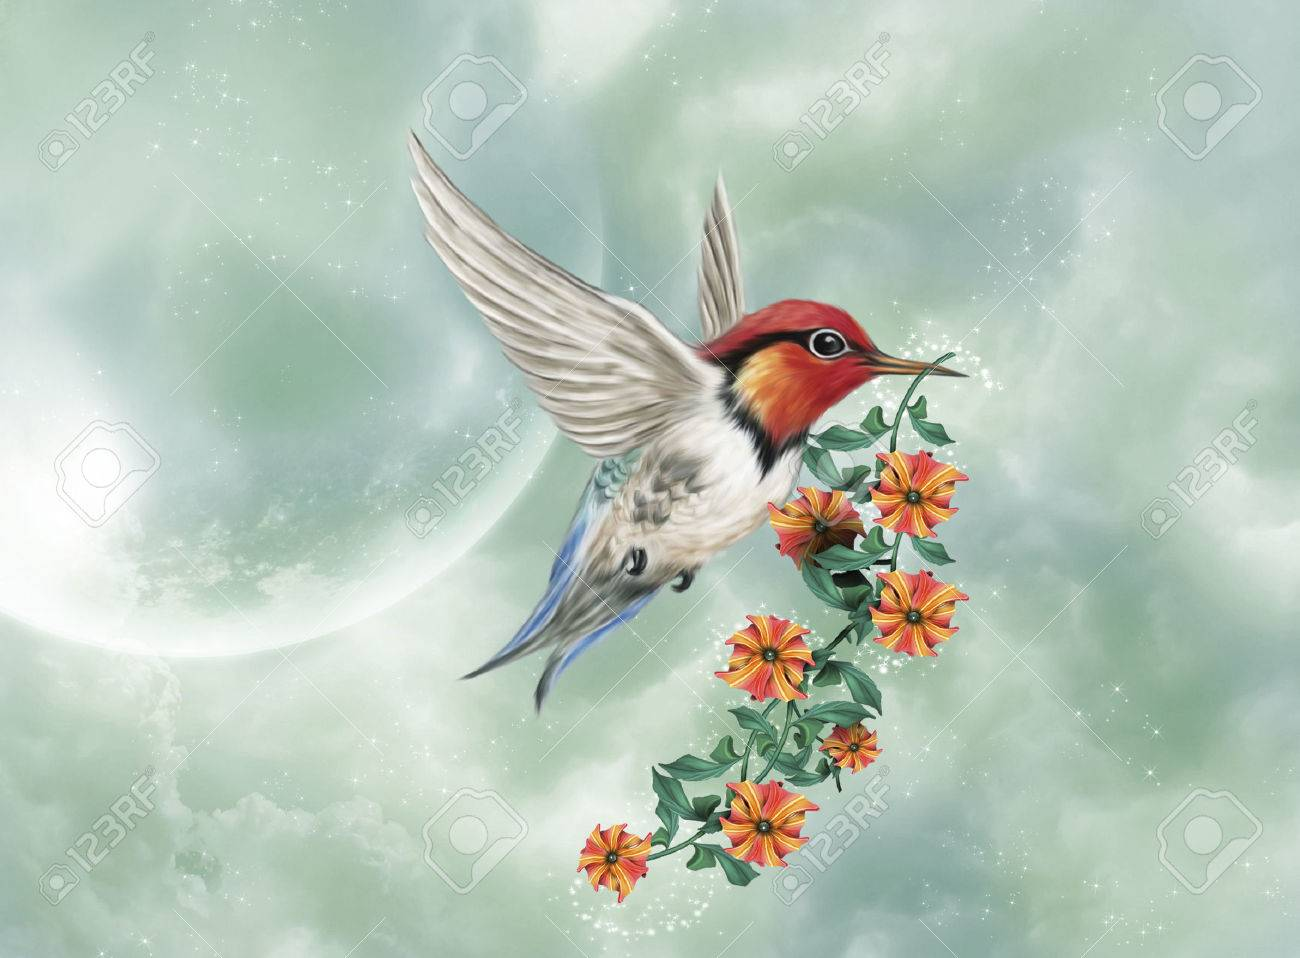 A little hummingbird is flying with a flowered branch - 46621952